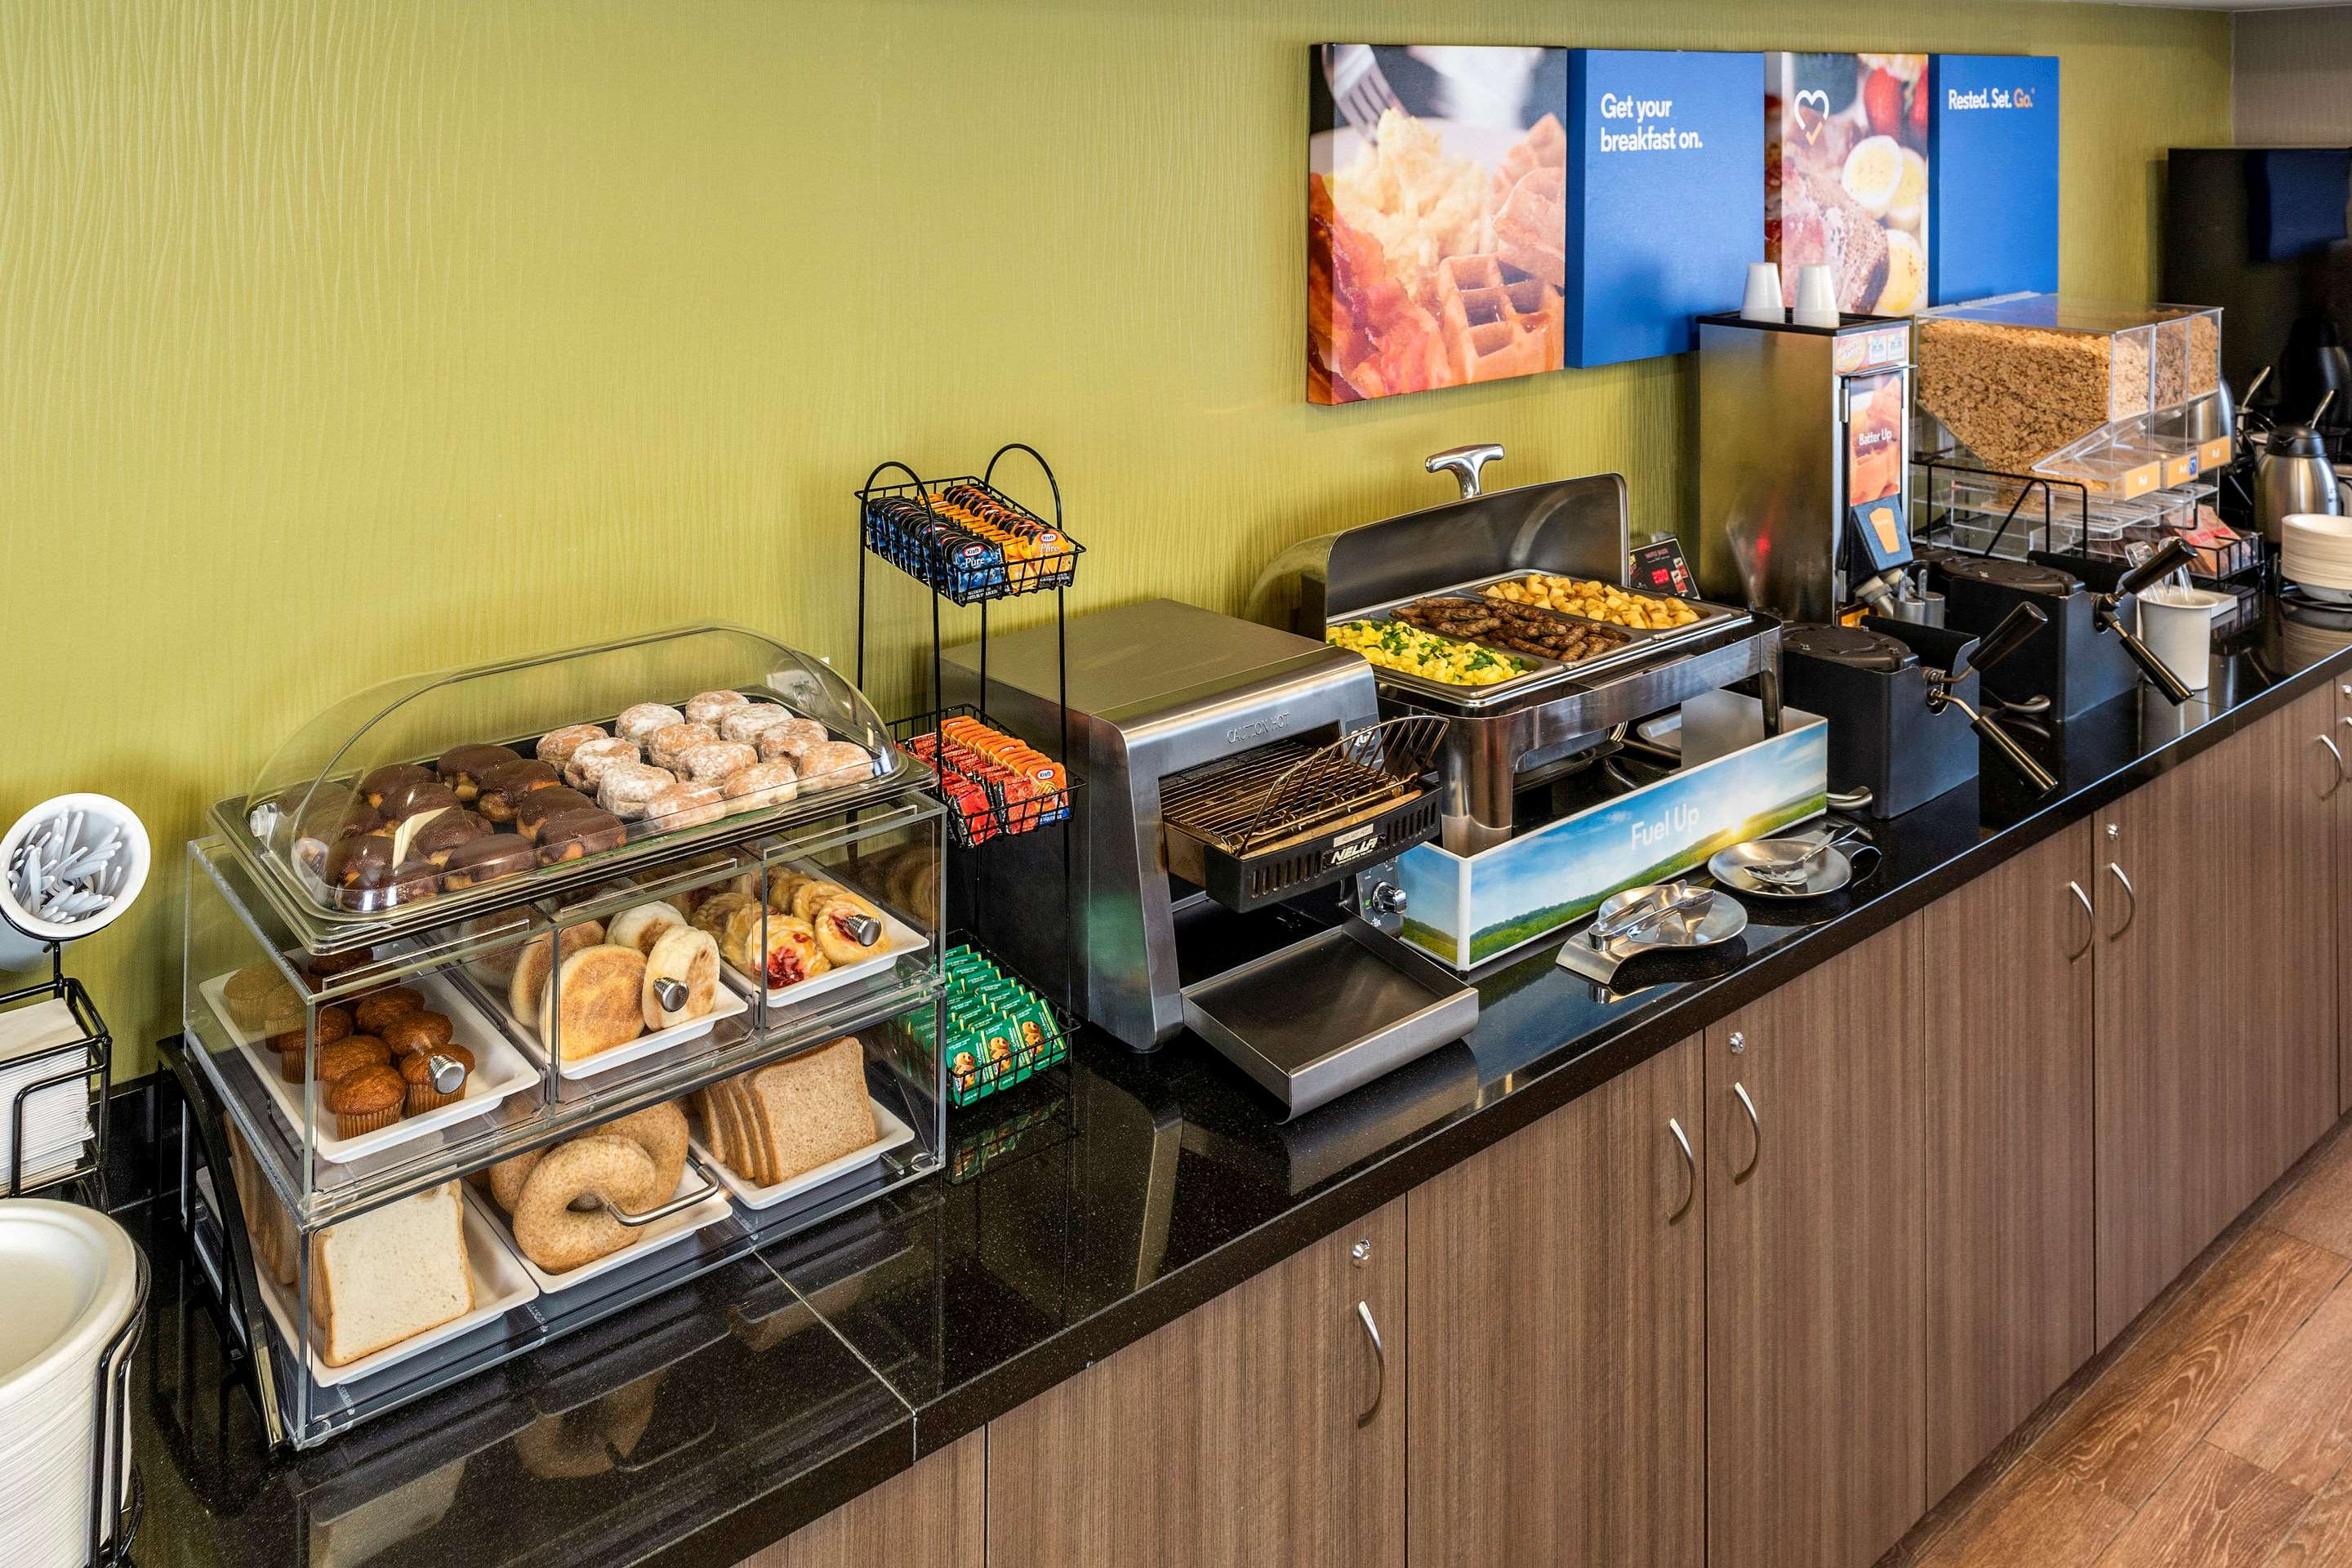 Comfort Inn in Saskatoon: An Assortment of Hot and Healthy Options